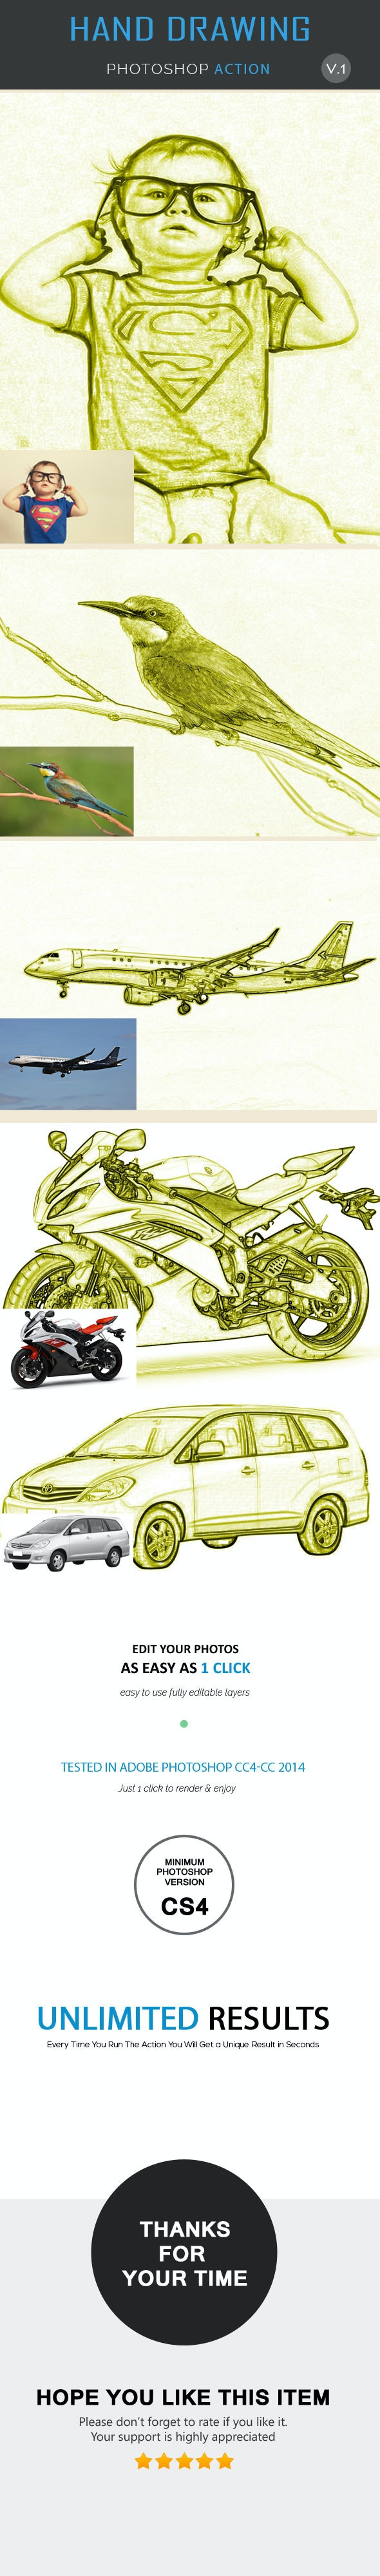 Hand Drawing Photoshop Action - Add-ons